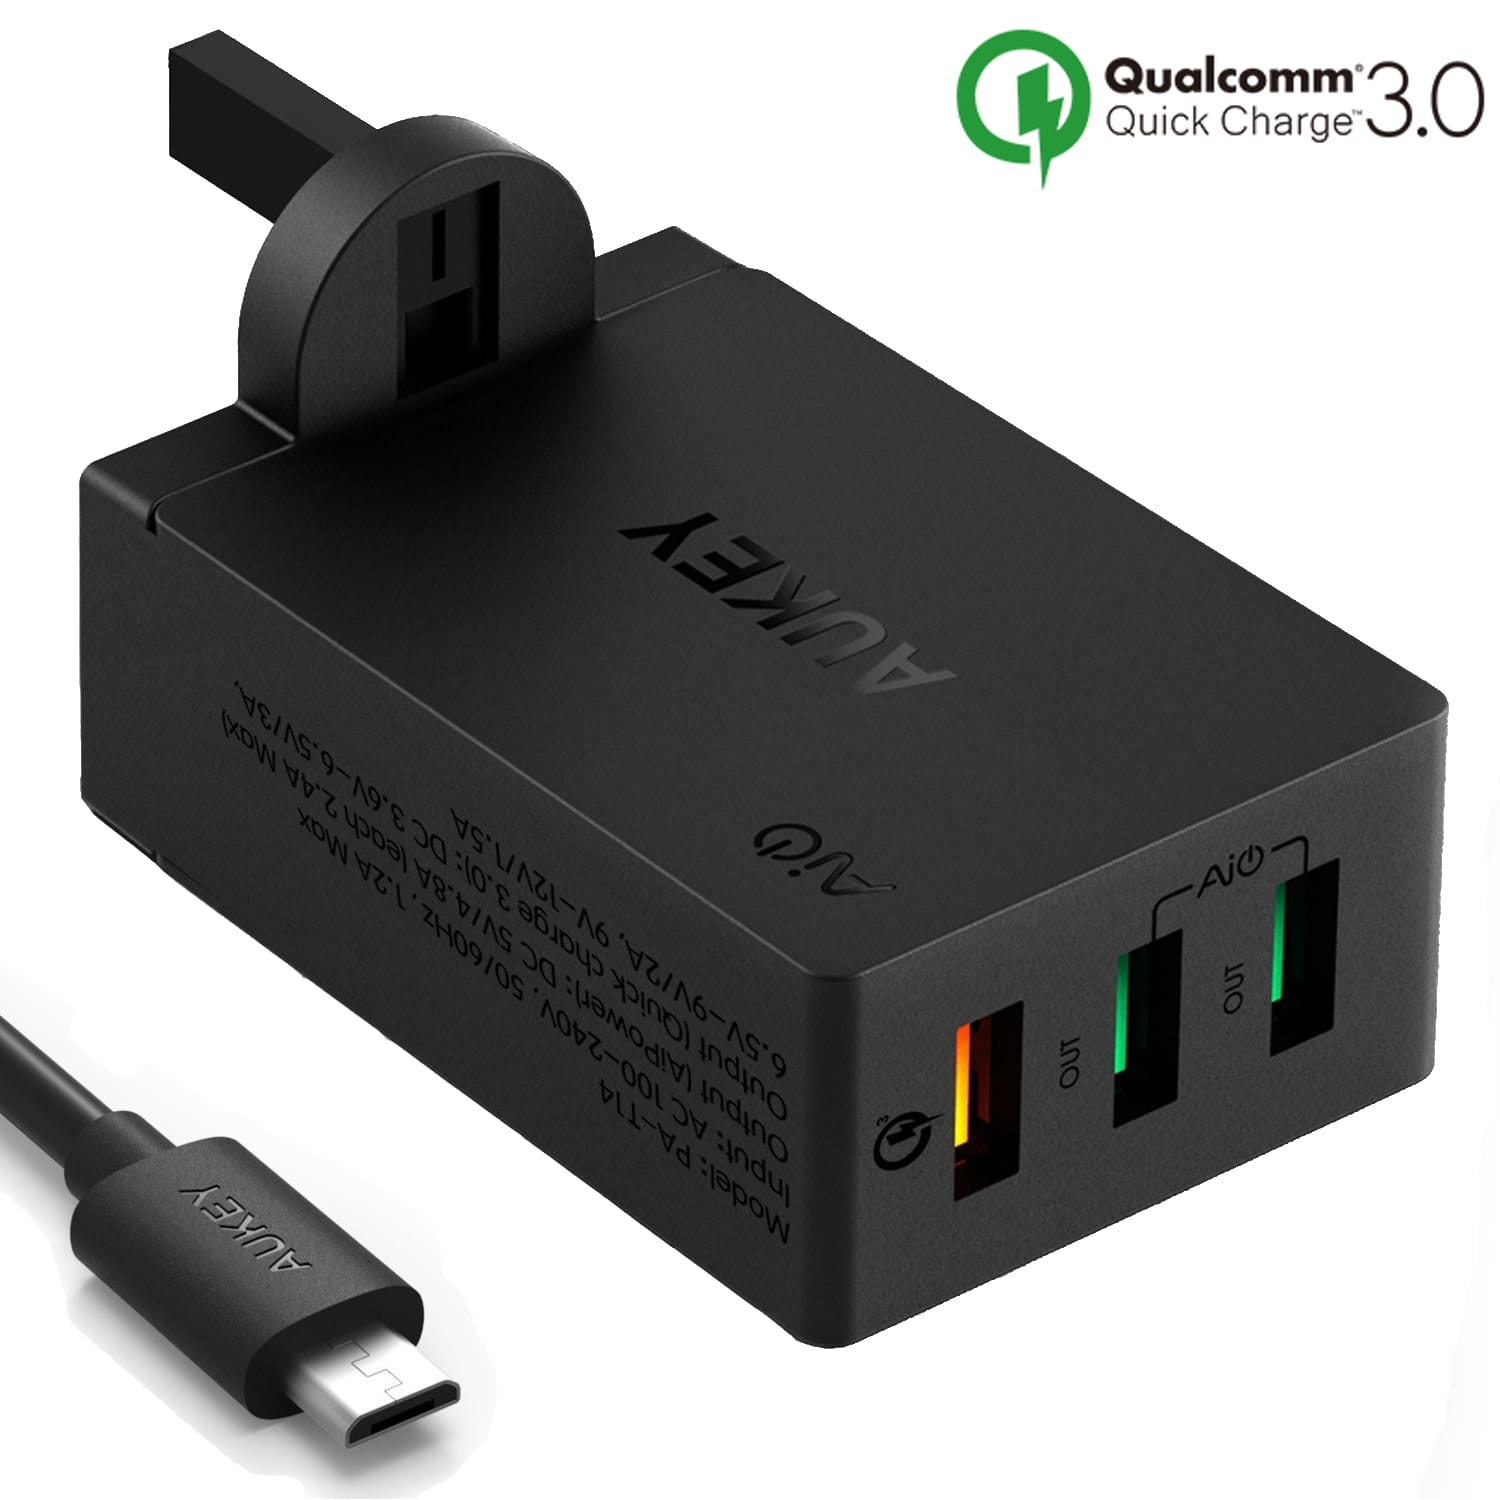 AUKEY PA-T14 3-Port USB Qualcomm Quick Charge 3.0 Travel Charger QC 3.